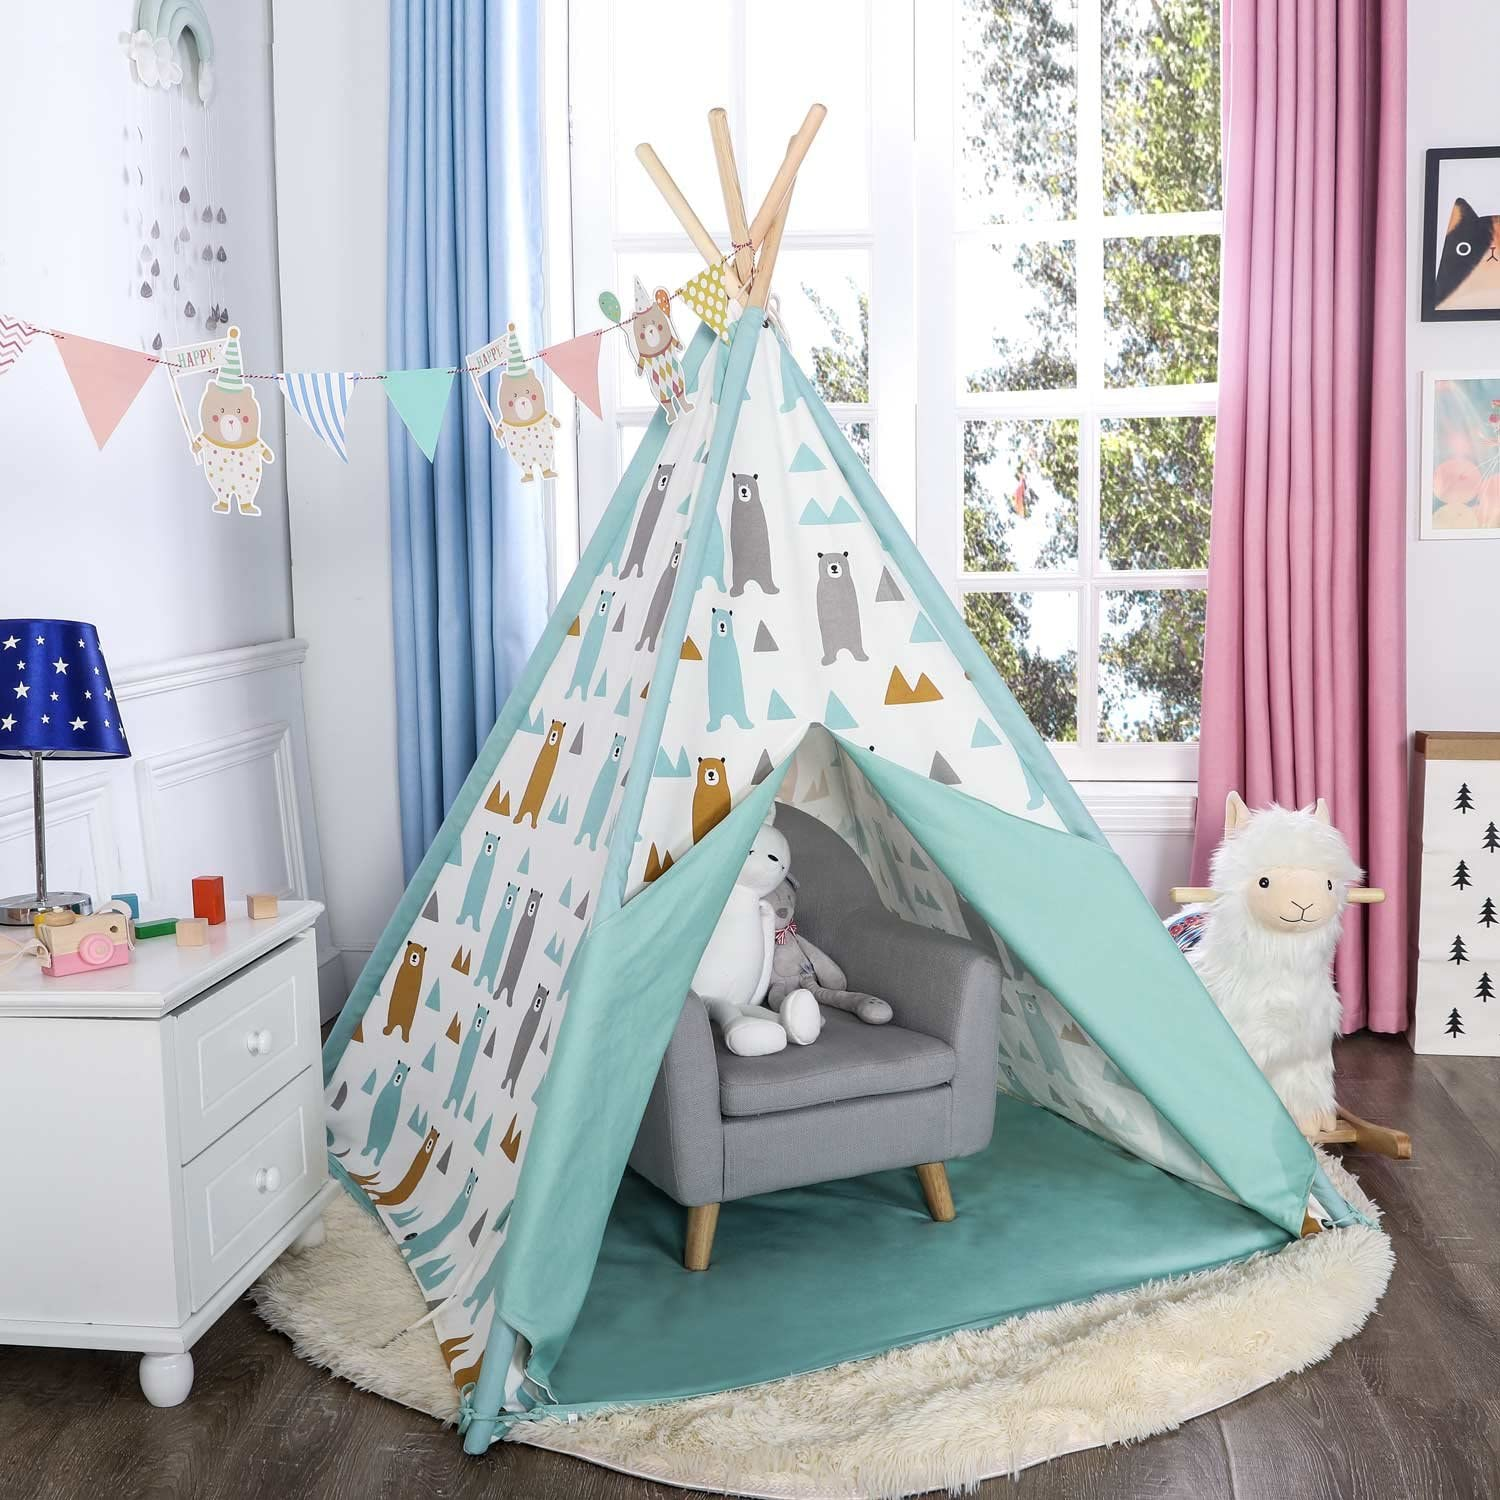 Asweets Kids Teepee Tent for Kids Boys & Girls Kids Play